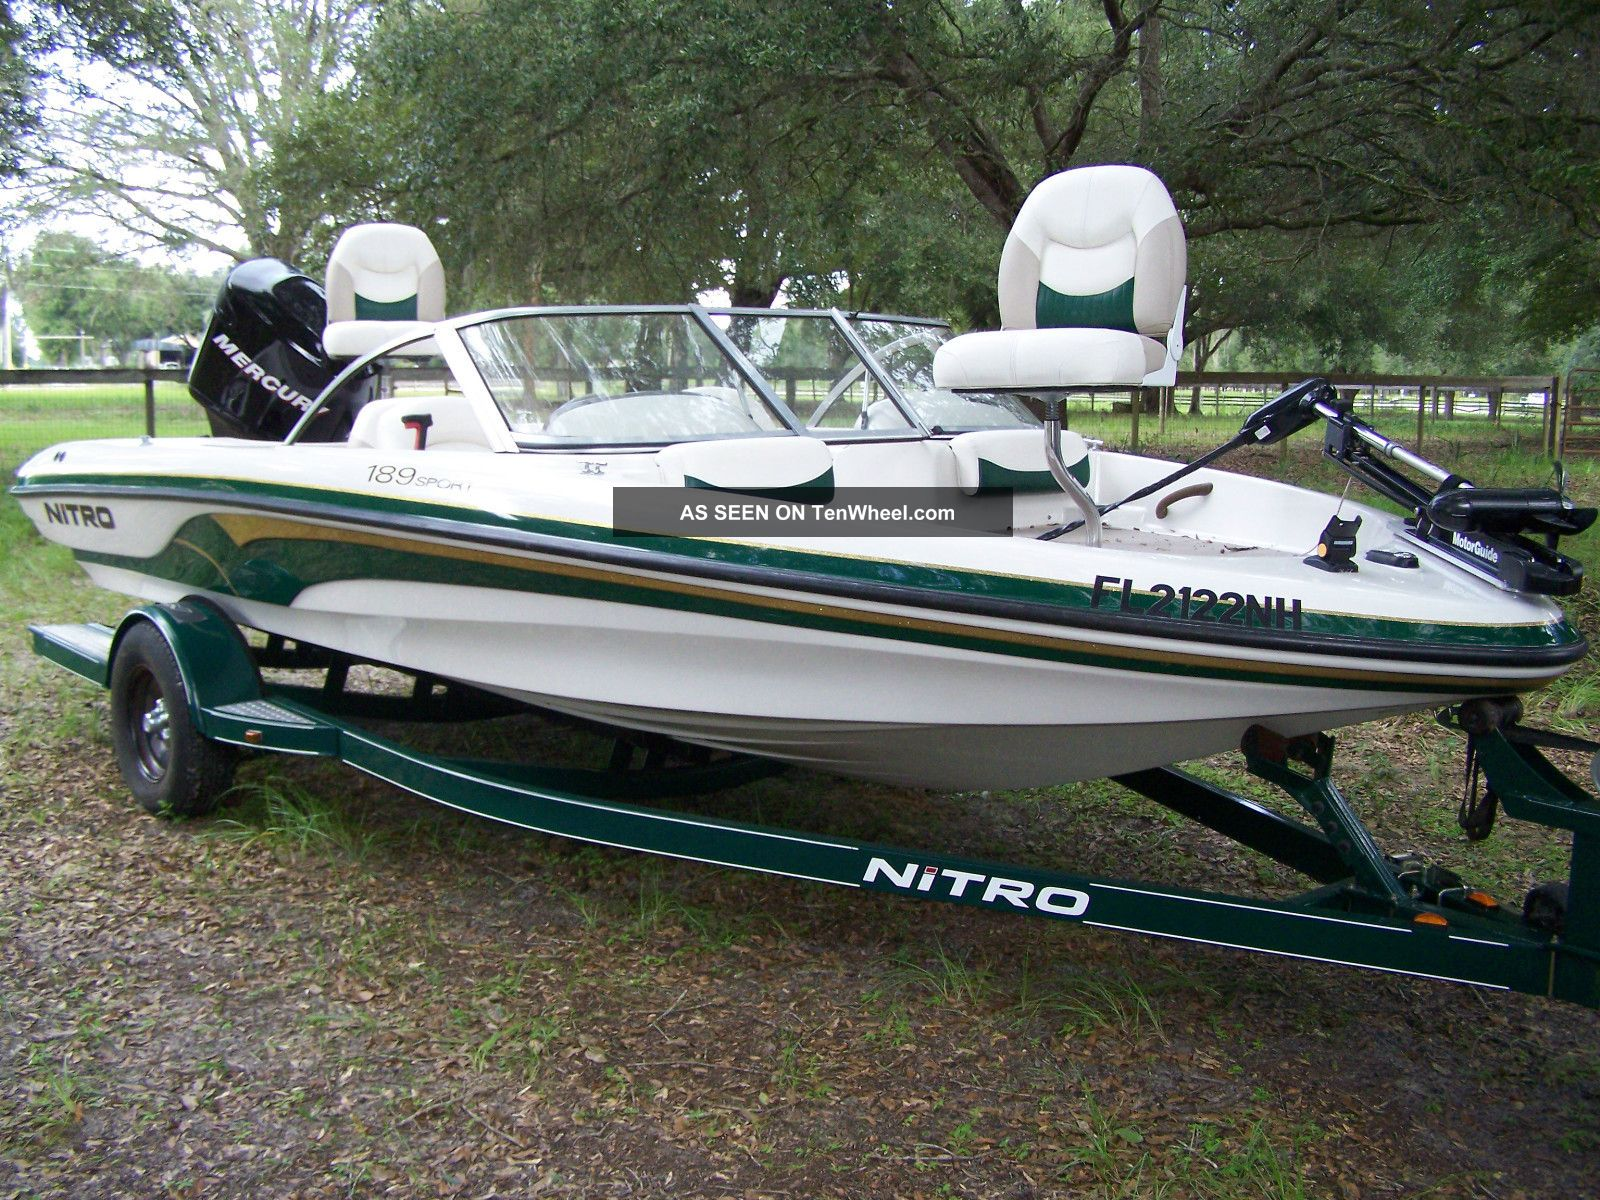 2006 nitro fish ski for Bass fishing boat